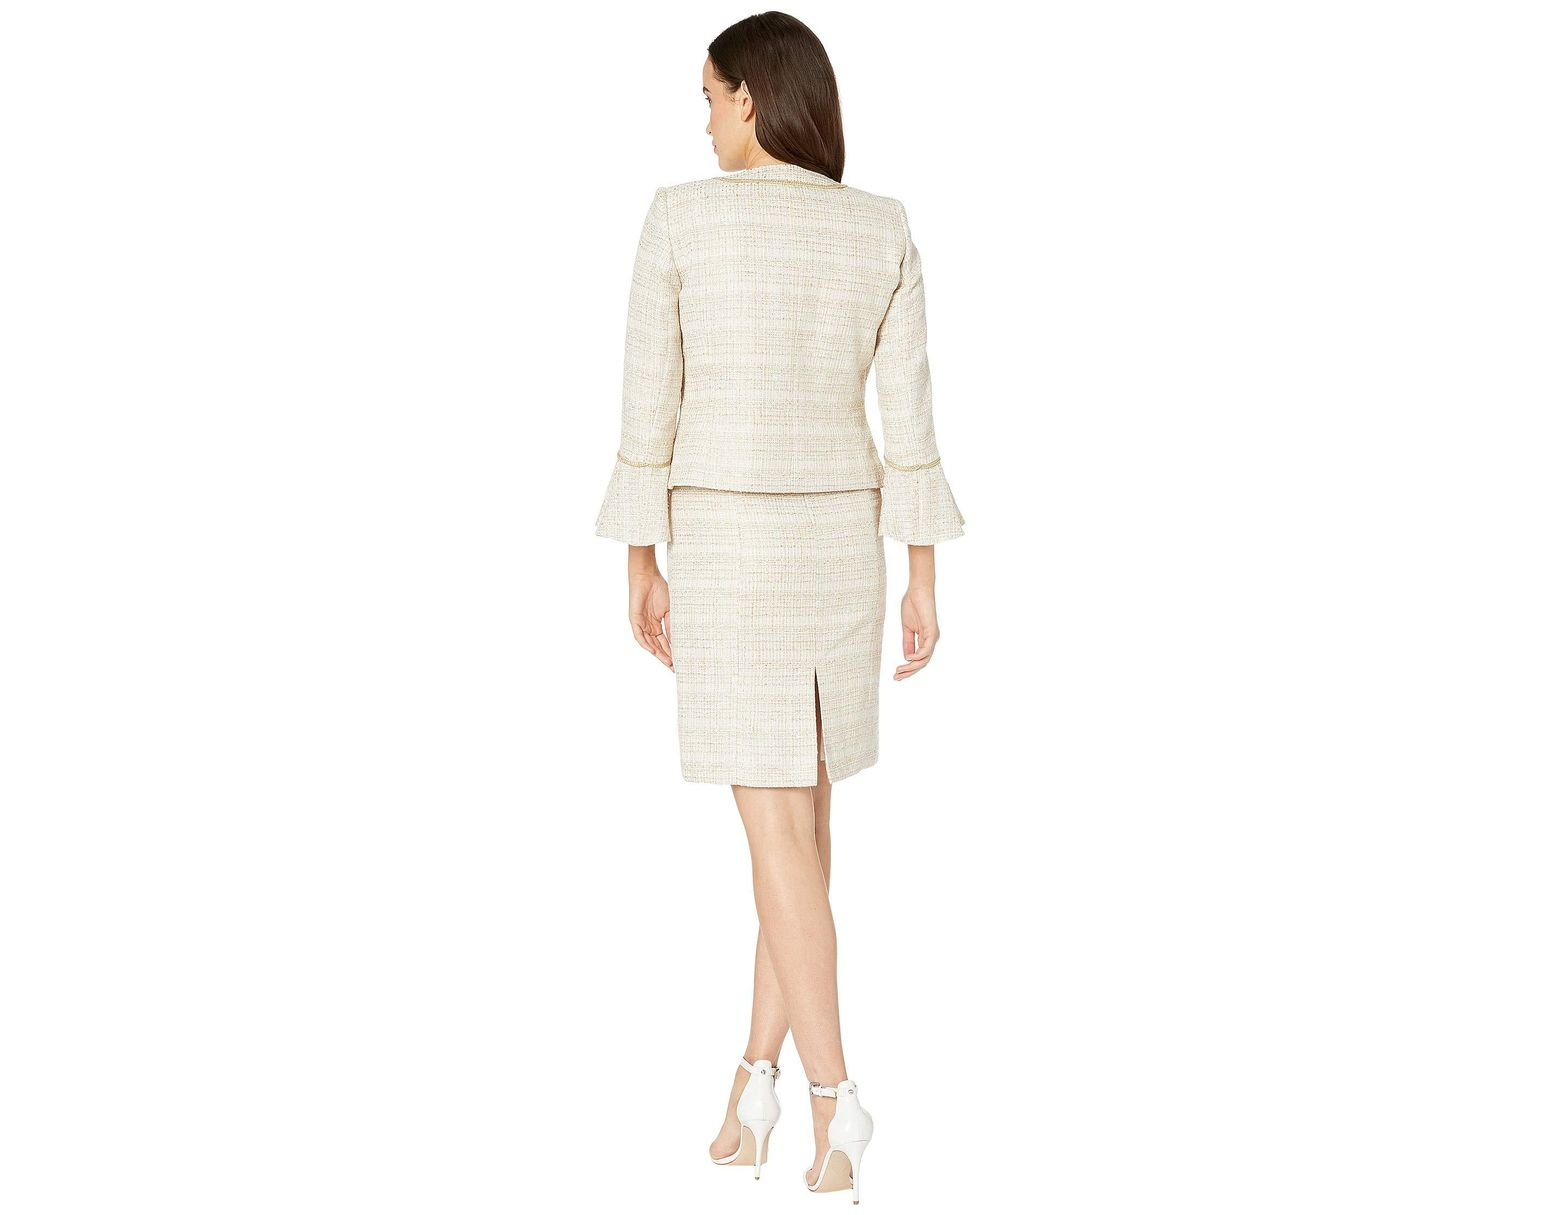 b6ccbf56289 Tahari Boucle Skirt Suit With Open Jacket in White - Save 50% - Lyst